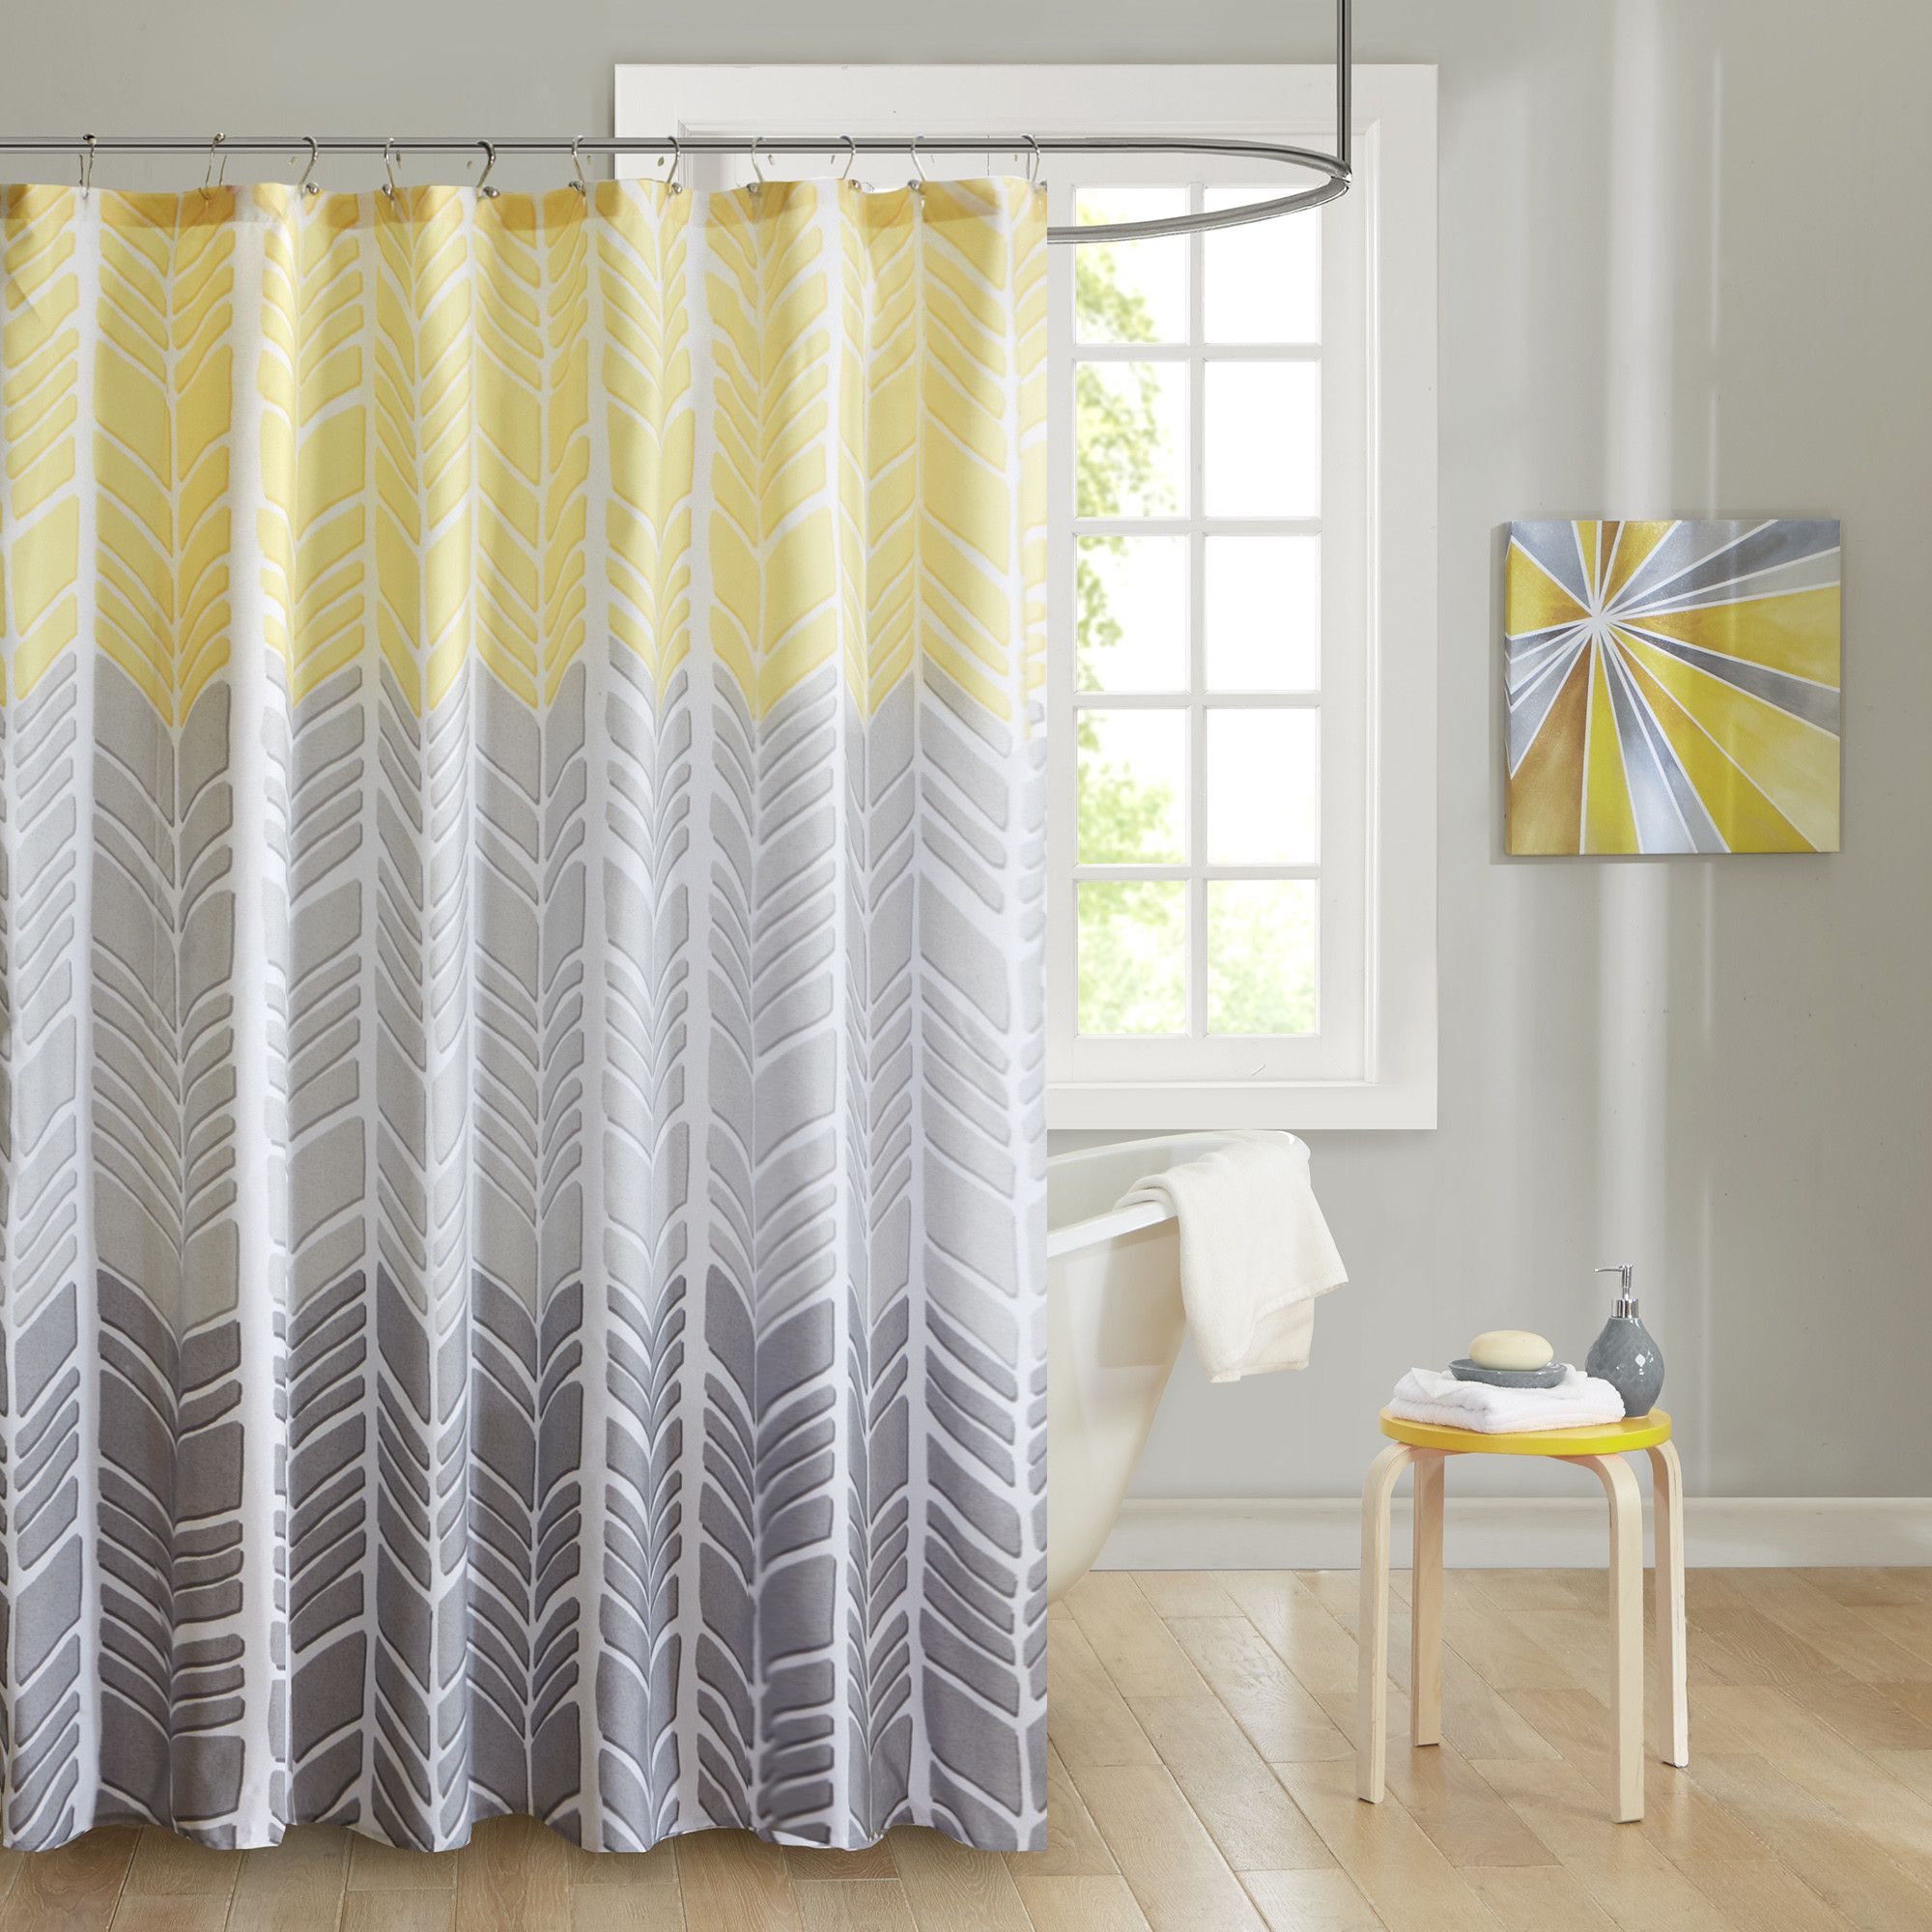 Shop Wayfair For Shower Curtains To Match Every Style And Budget Enjoy Free Shipping On